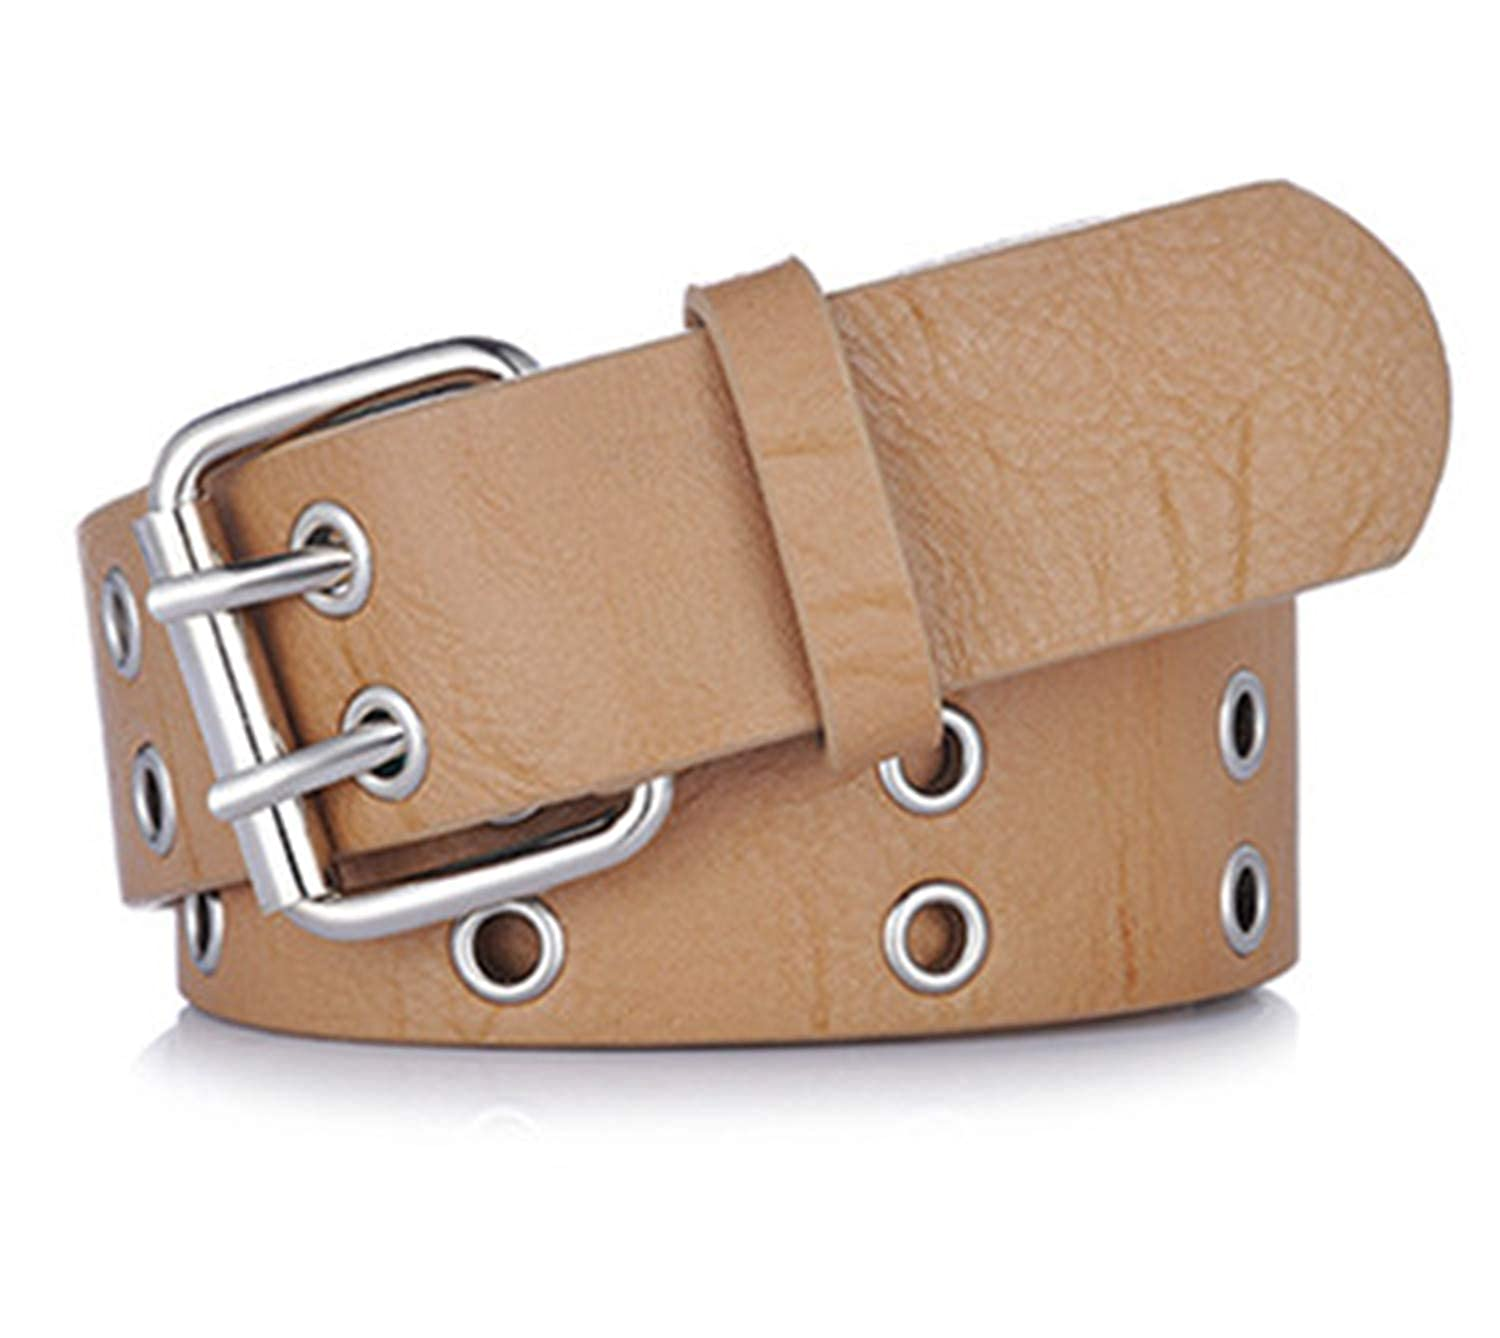 Fashion Belts For Women Double Pin Buckle Pu Leather Waist Strap For Ladies Jeans